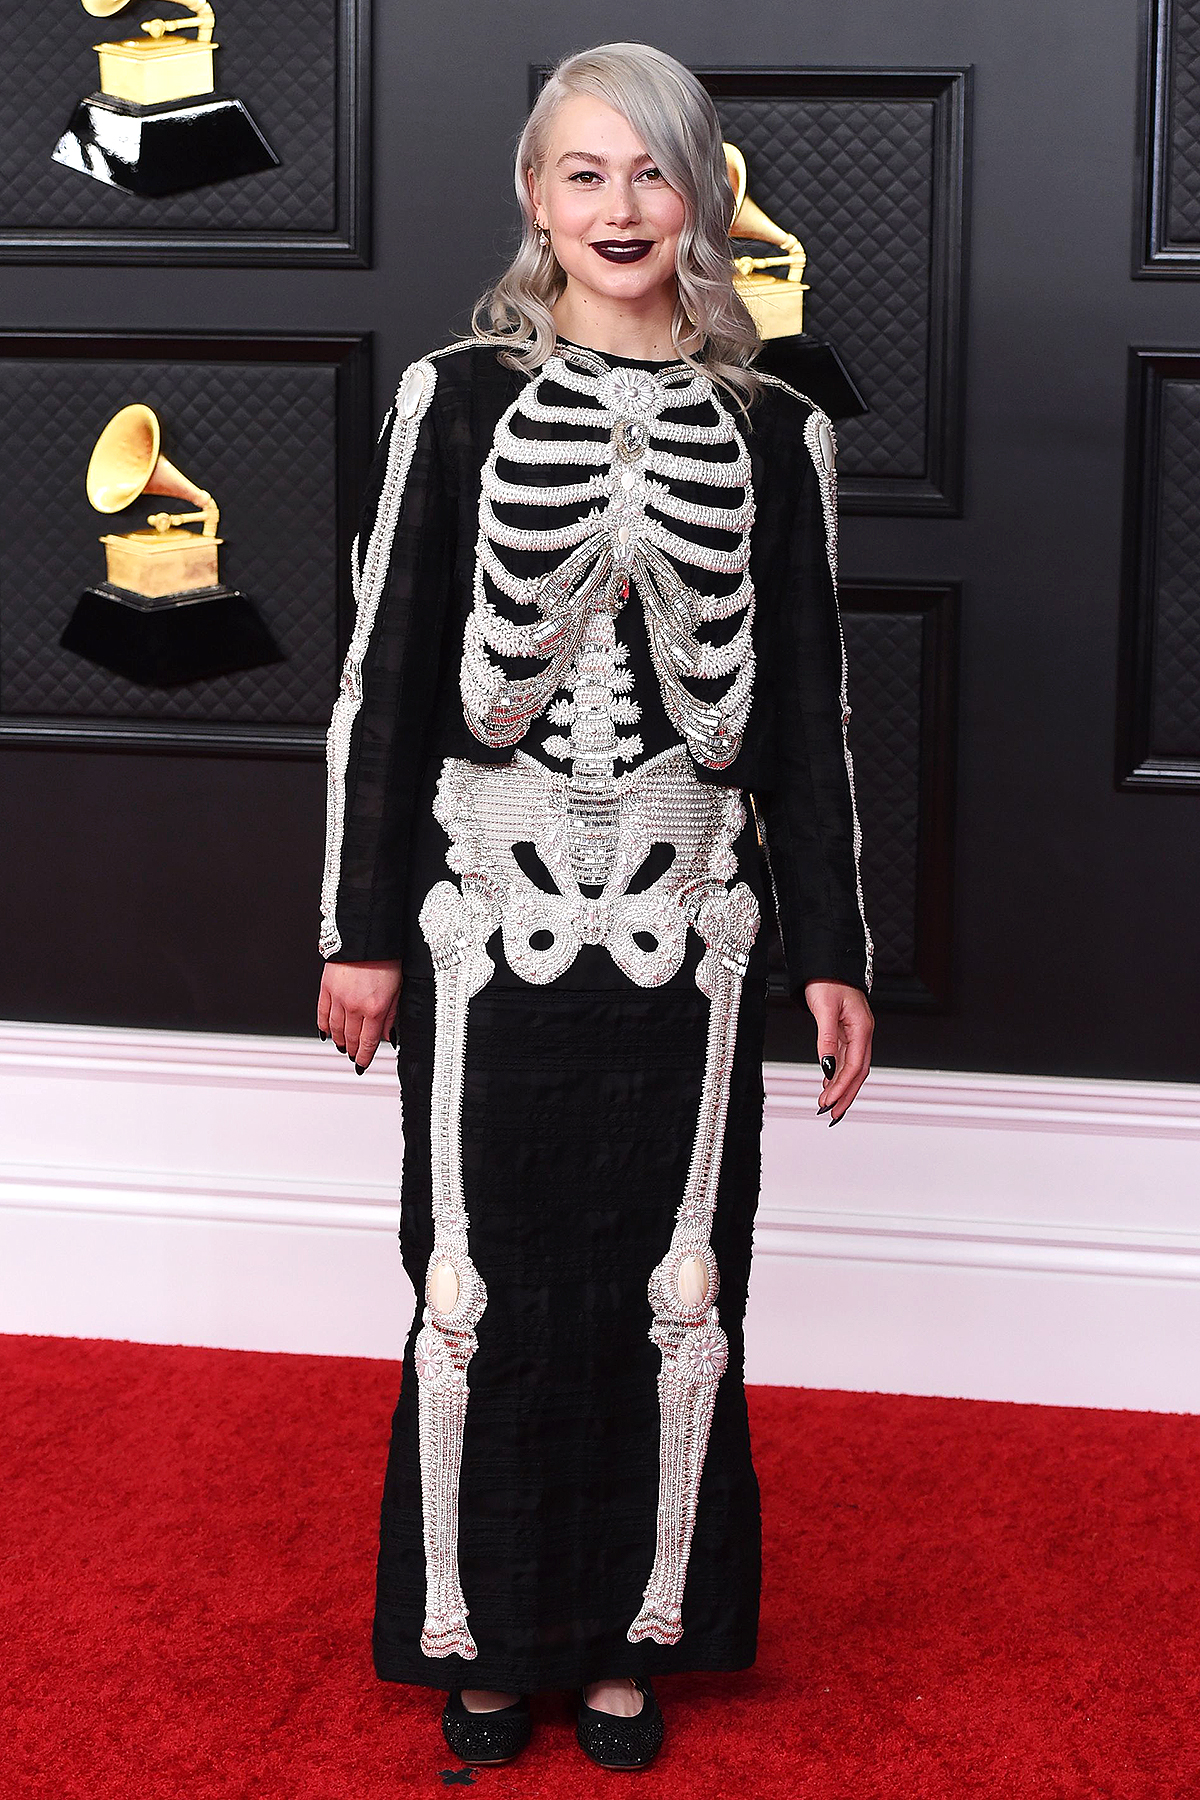 Phoebe Bridgers arrives at the 63rd annual Grammys